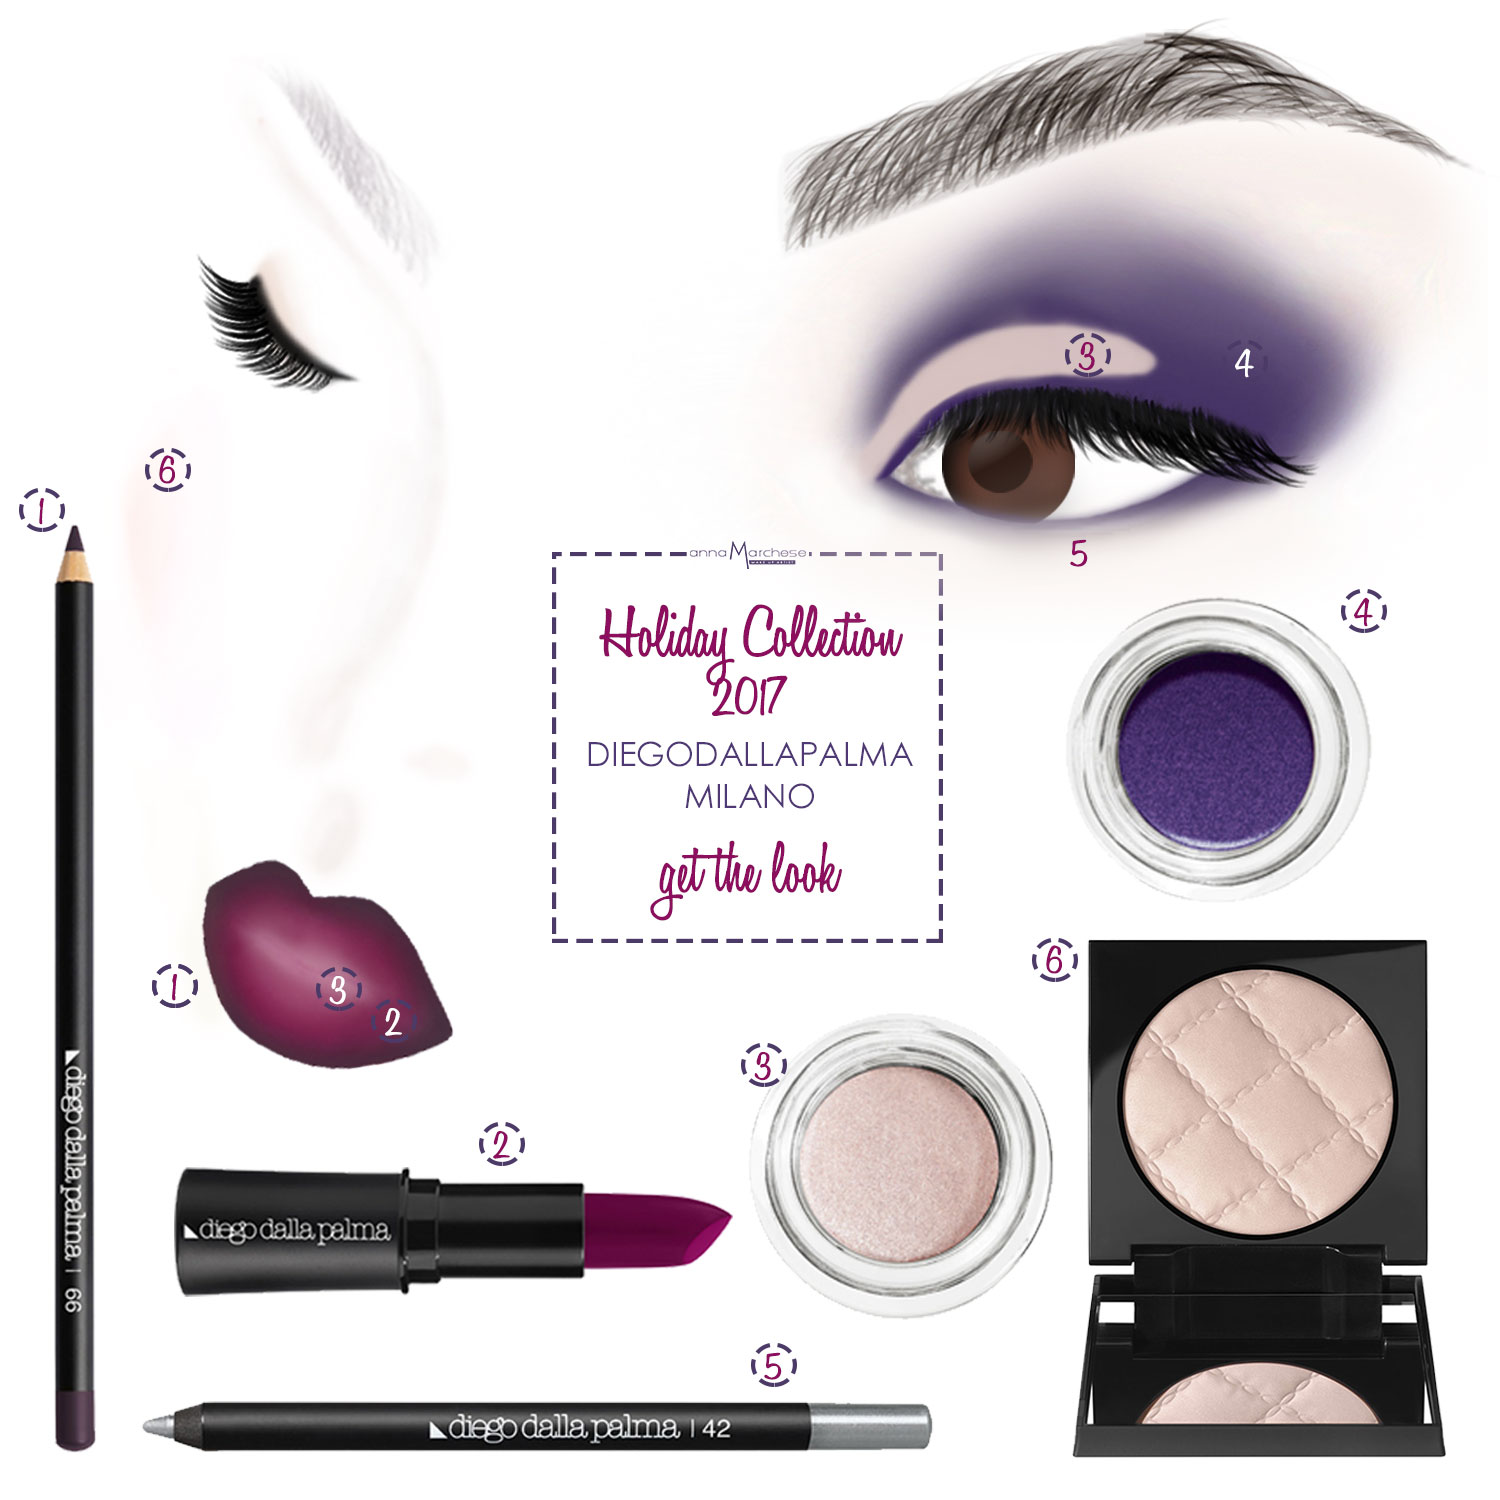 get-the-look-diego-dalla-palma-holiday-collection-natale-2017-face-chart-degrade-lips-ombre-gradient-lipstick-how-to-idea-purple-eyes-hot-lips-cherry-lipstick-matt-anna-marchese